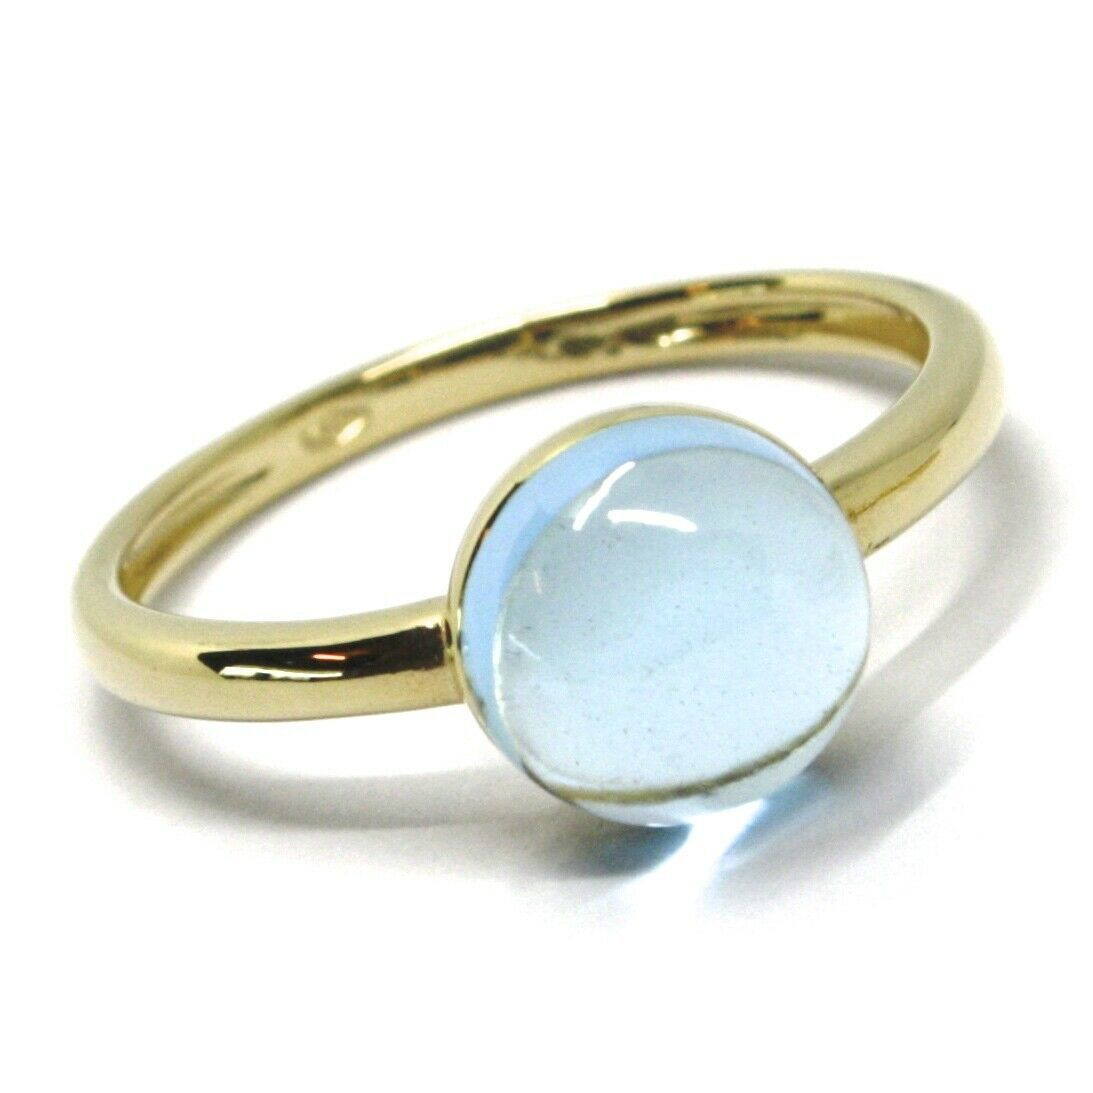 SOLID 18K YELLOW GOLD RING, CABOCHON CENTRAL BLUE TOPAZ, DIAMETER 8mm